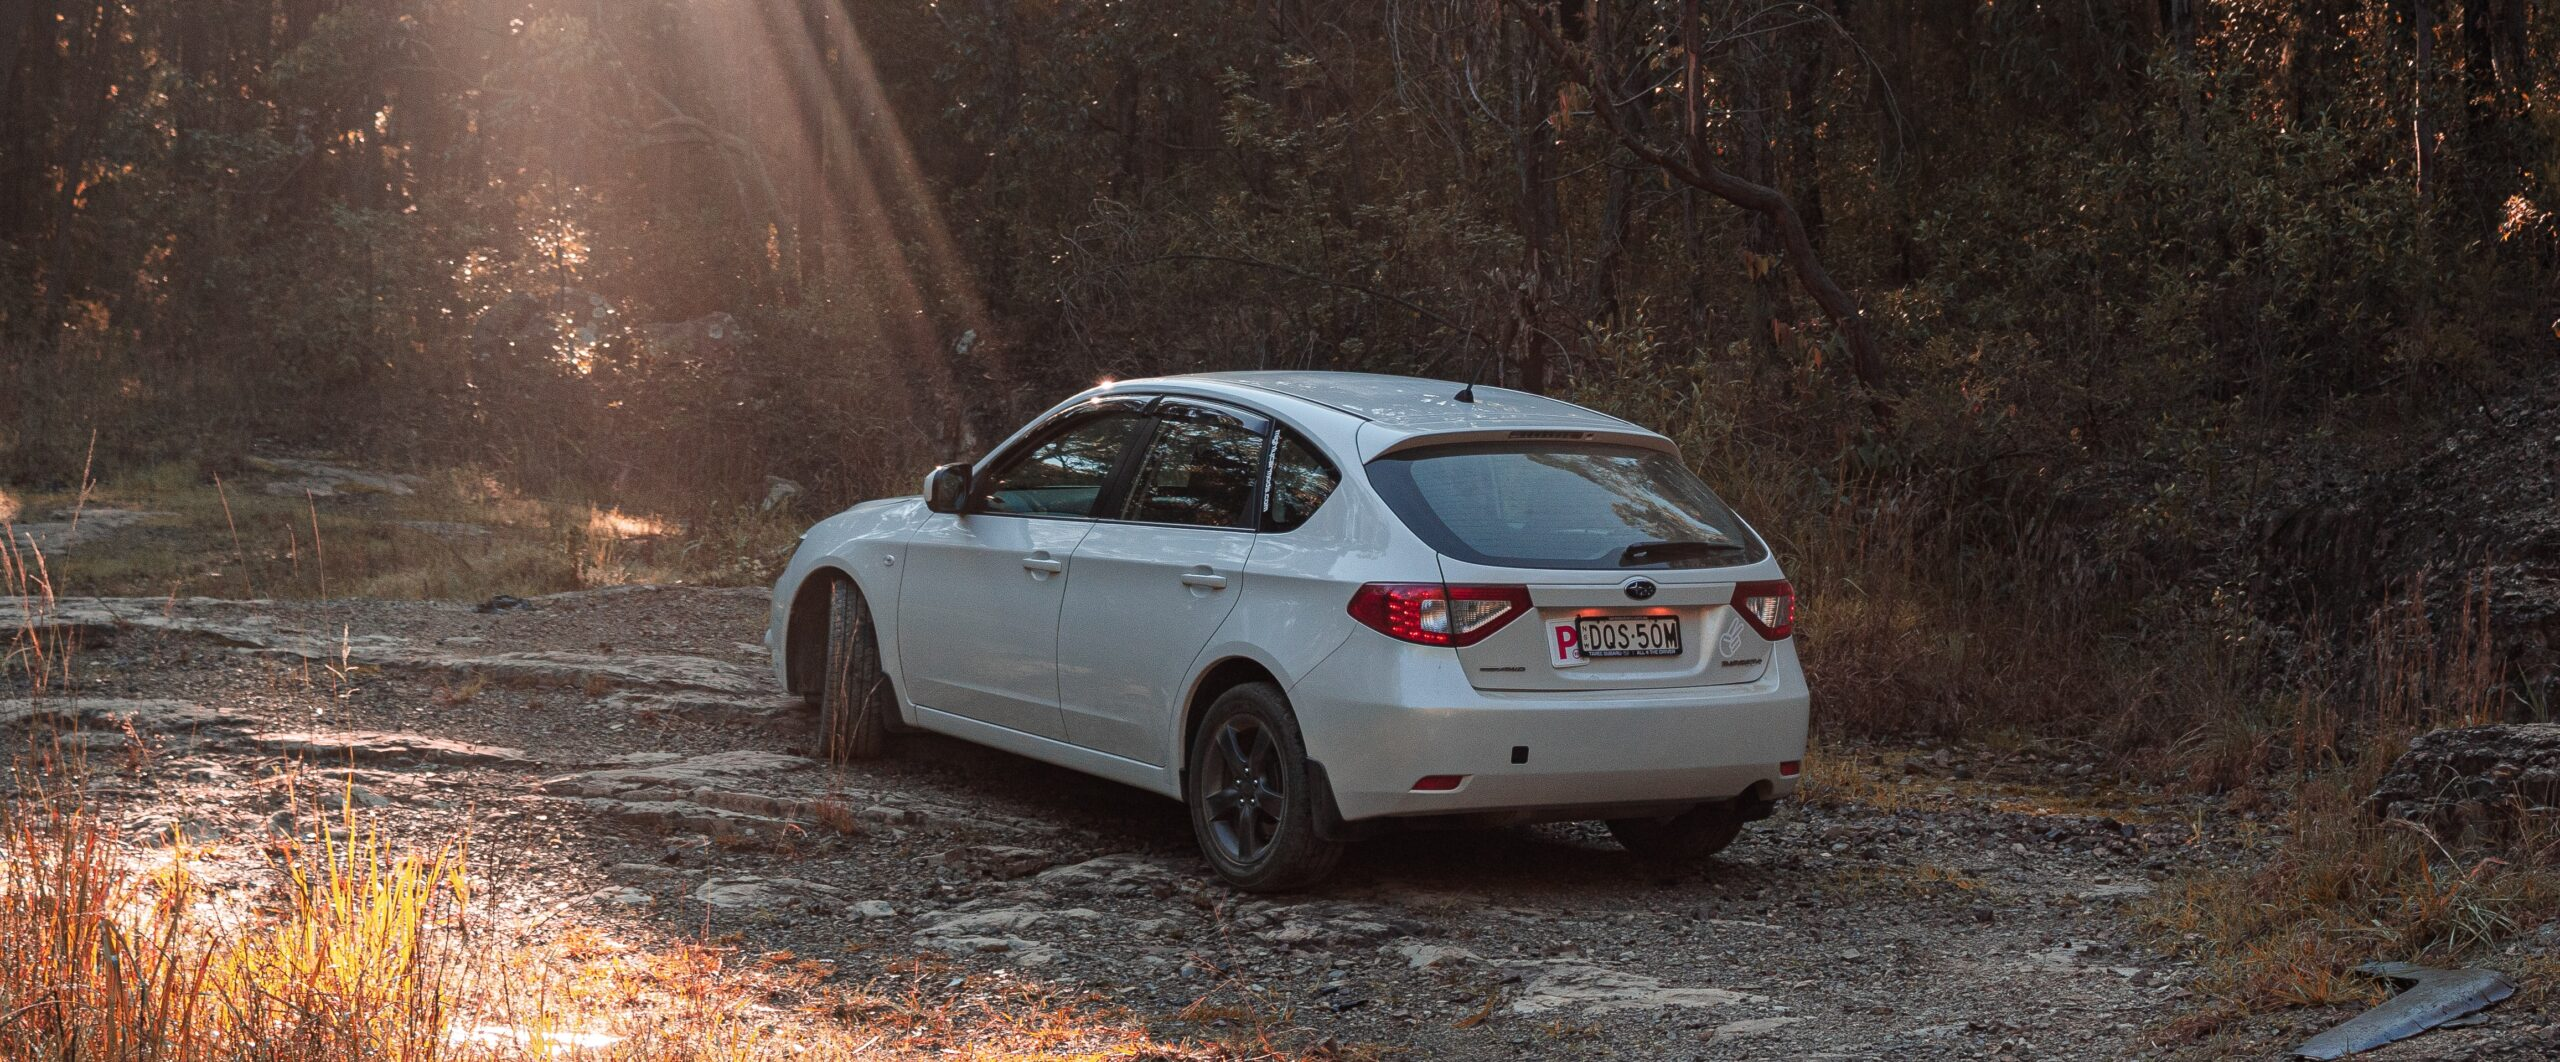 The 3 Most Popular Ways to Lift Your Subaru